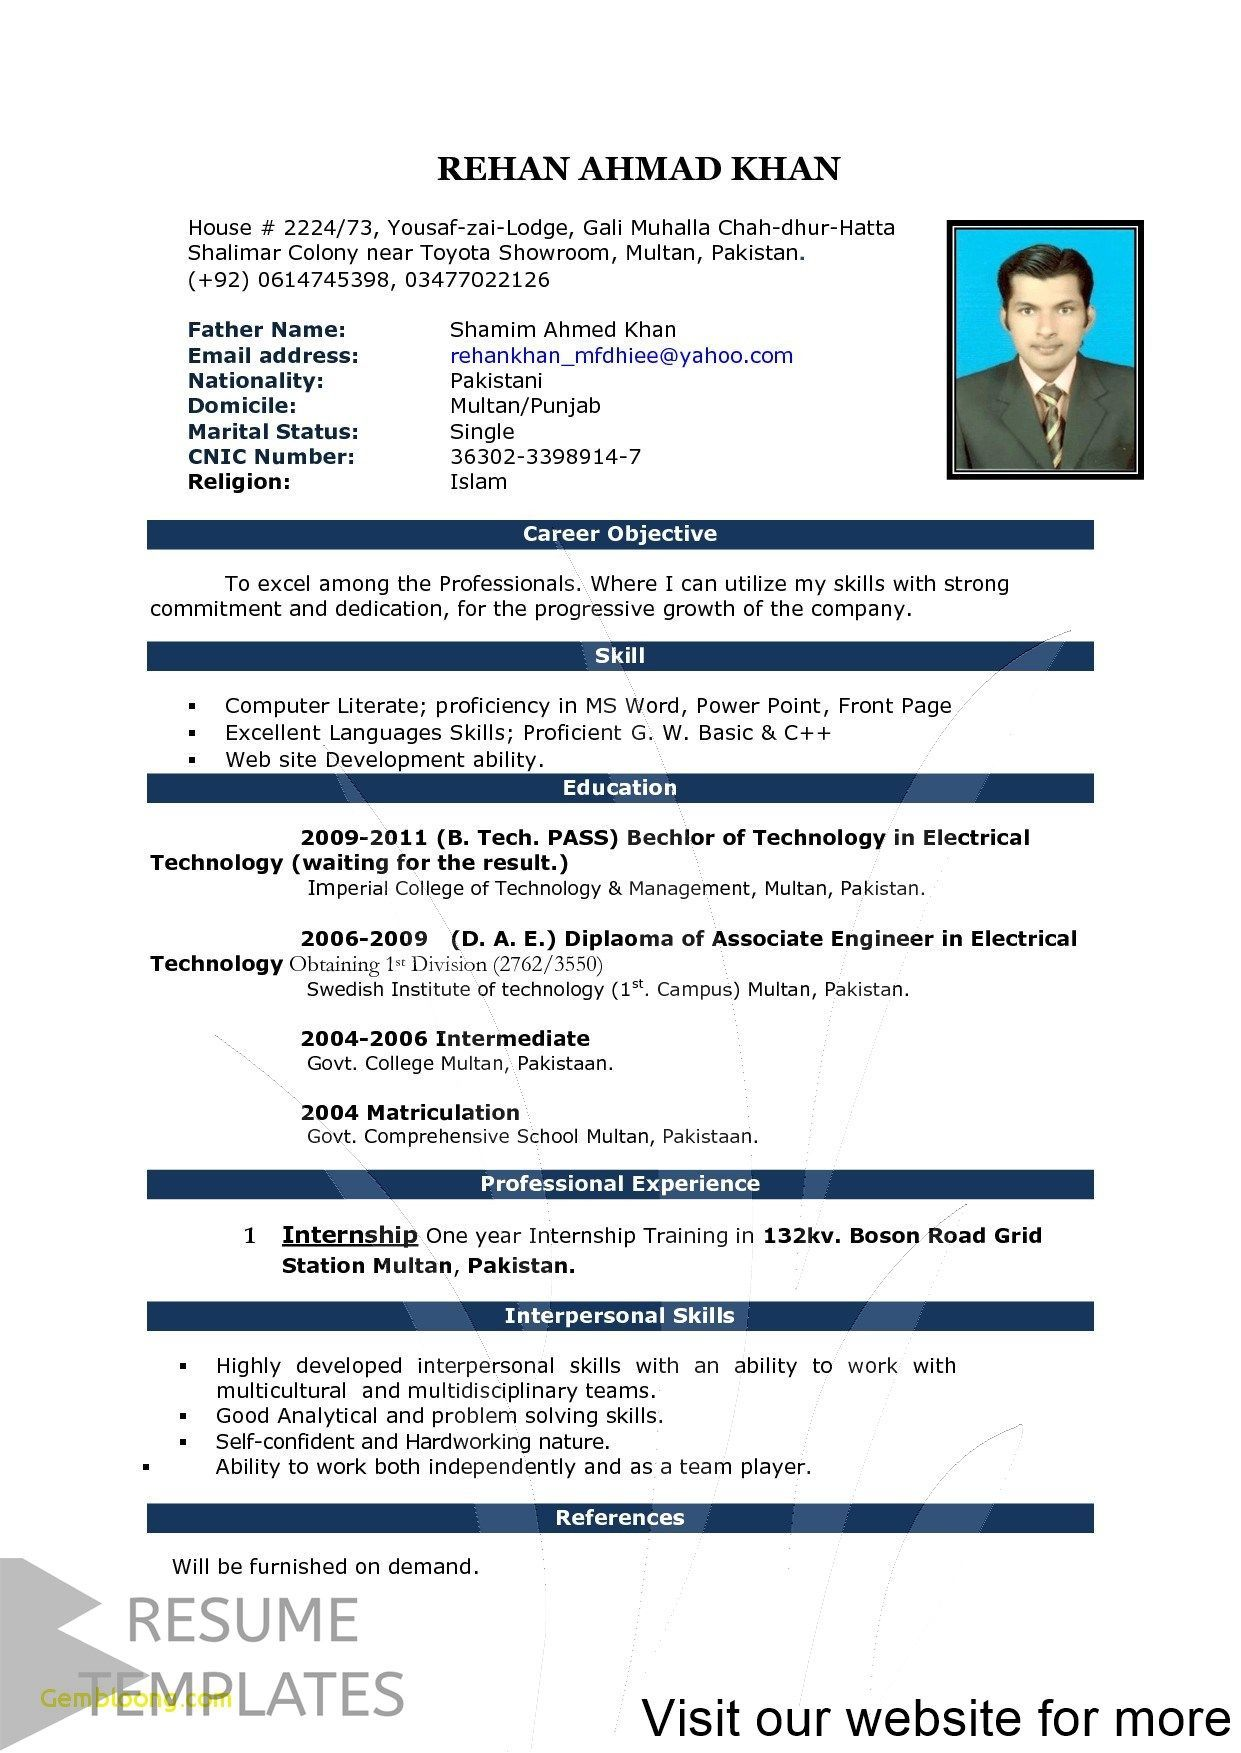 Resume Template Free Resume Template Professional Resume Examples Simple Resume Exam Job Resume Template Resume Template Free Microsoft Word Resume Template